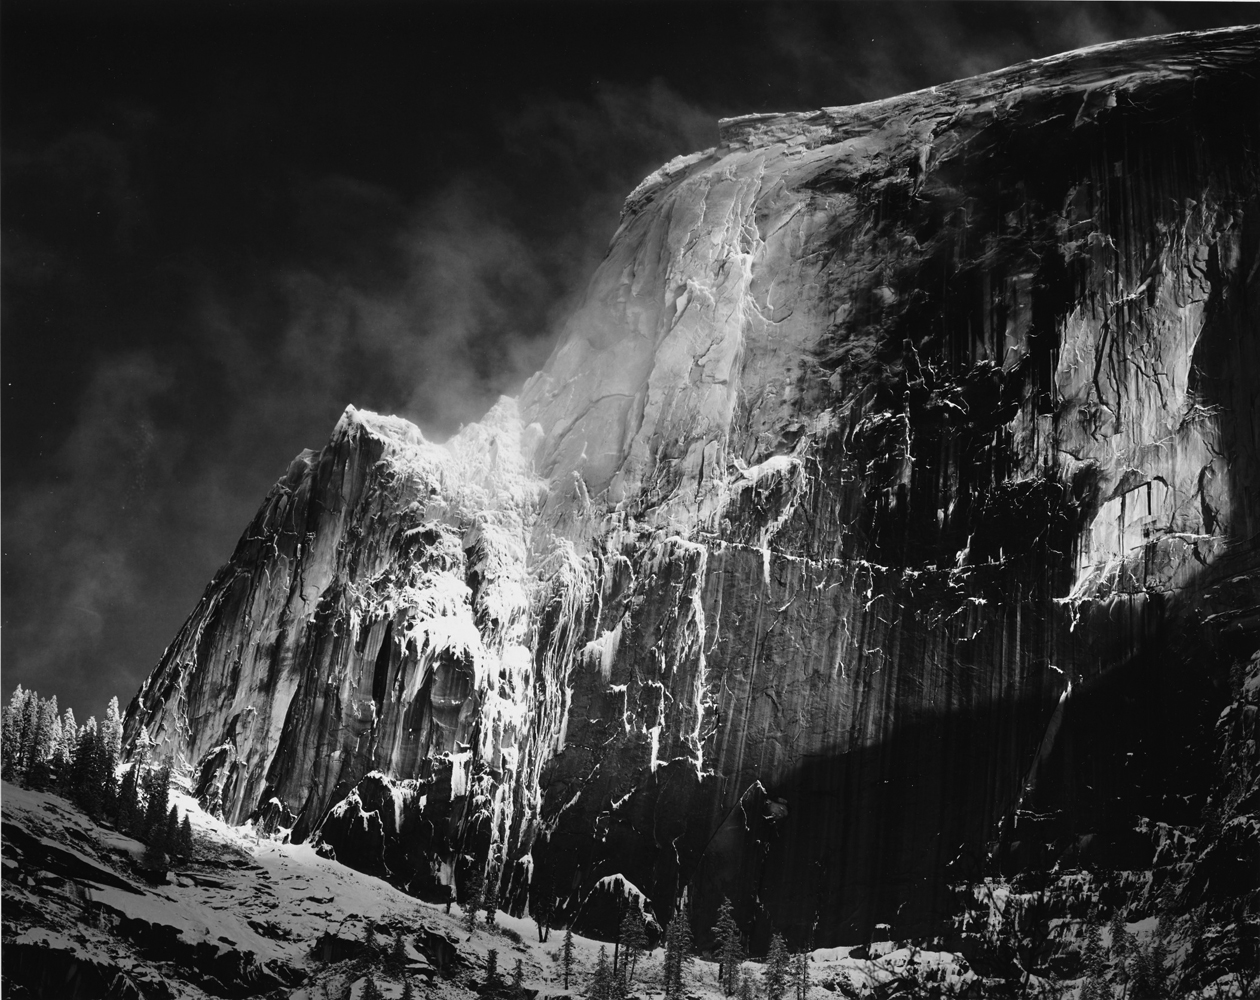 Ansel Adams - Half Dome Blowing Snow Yosemite National Park 1955